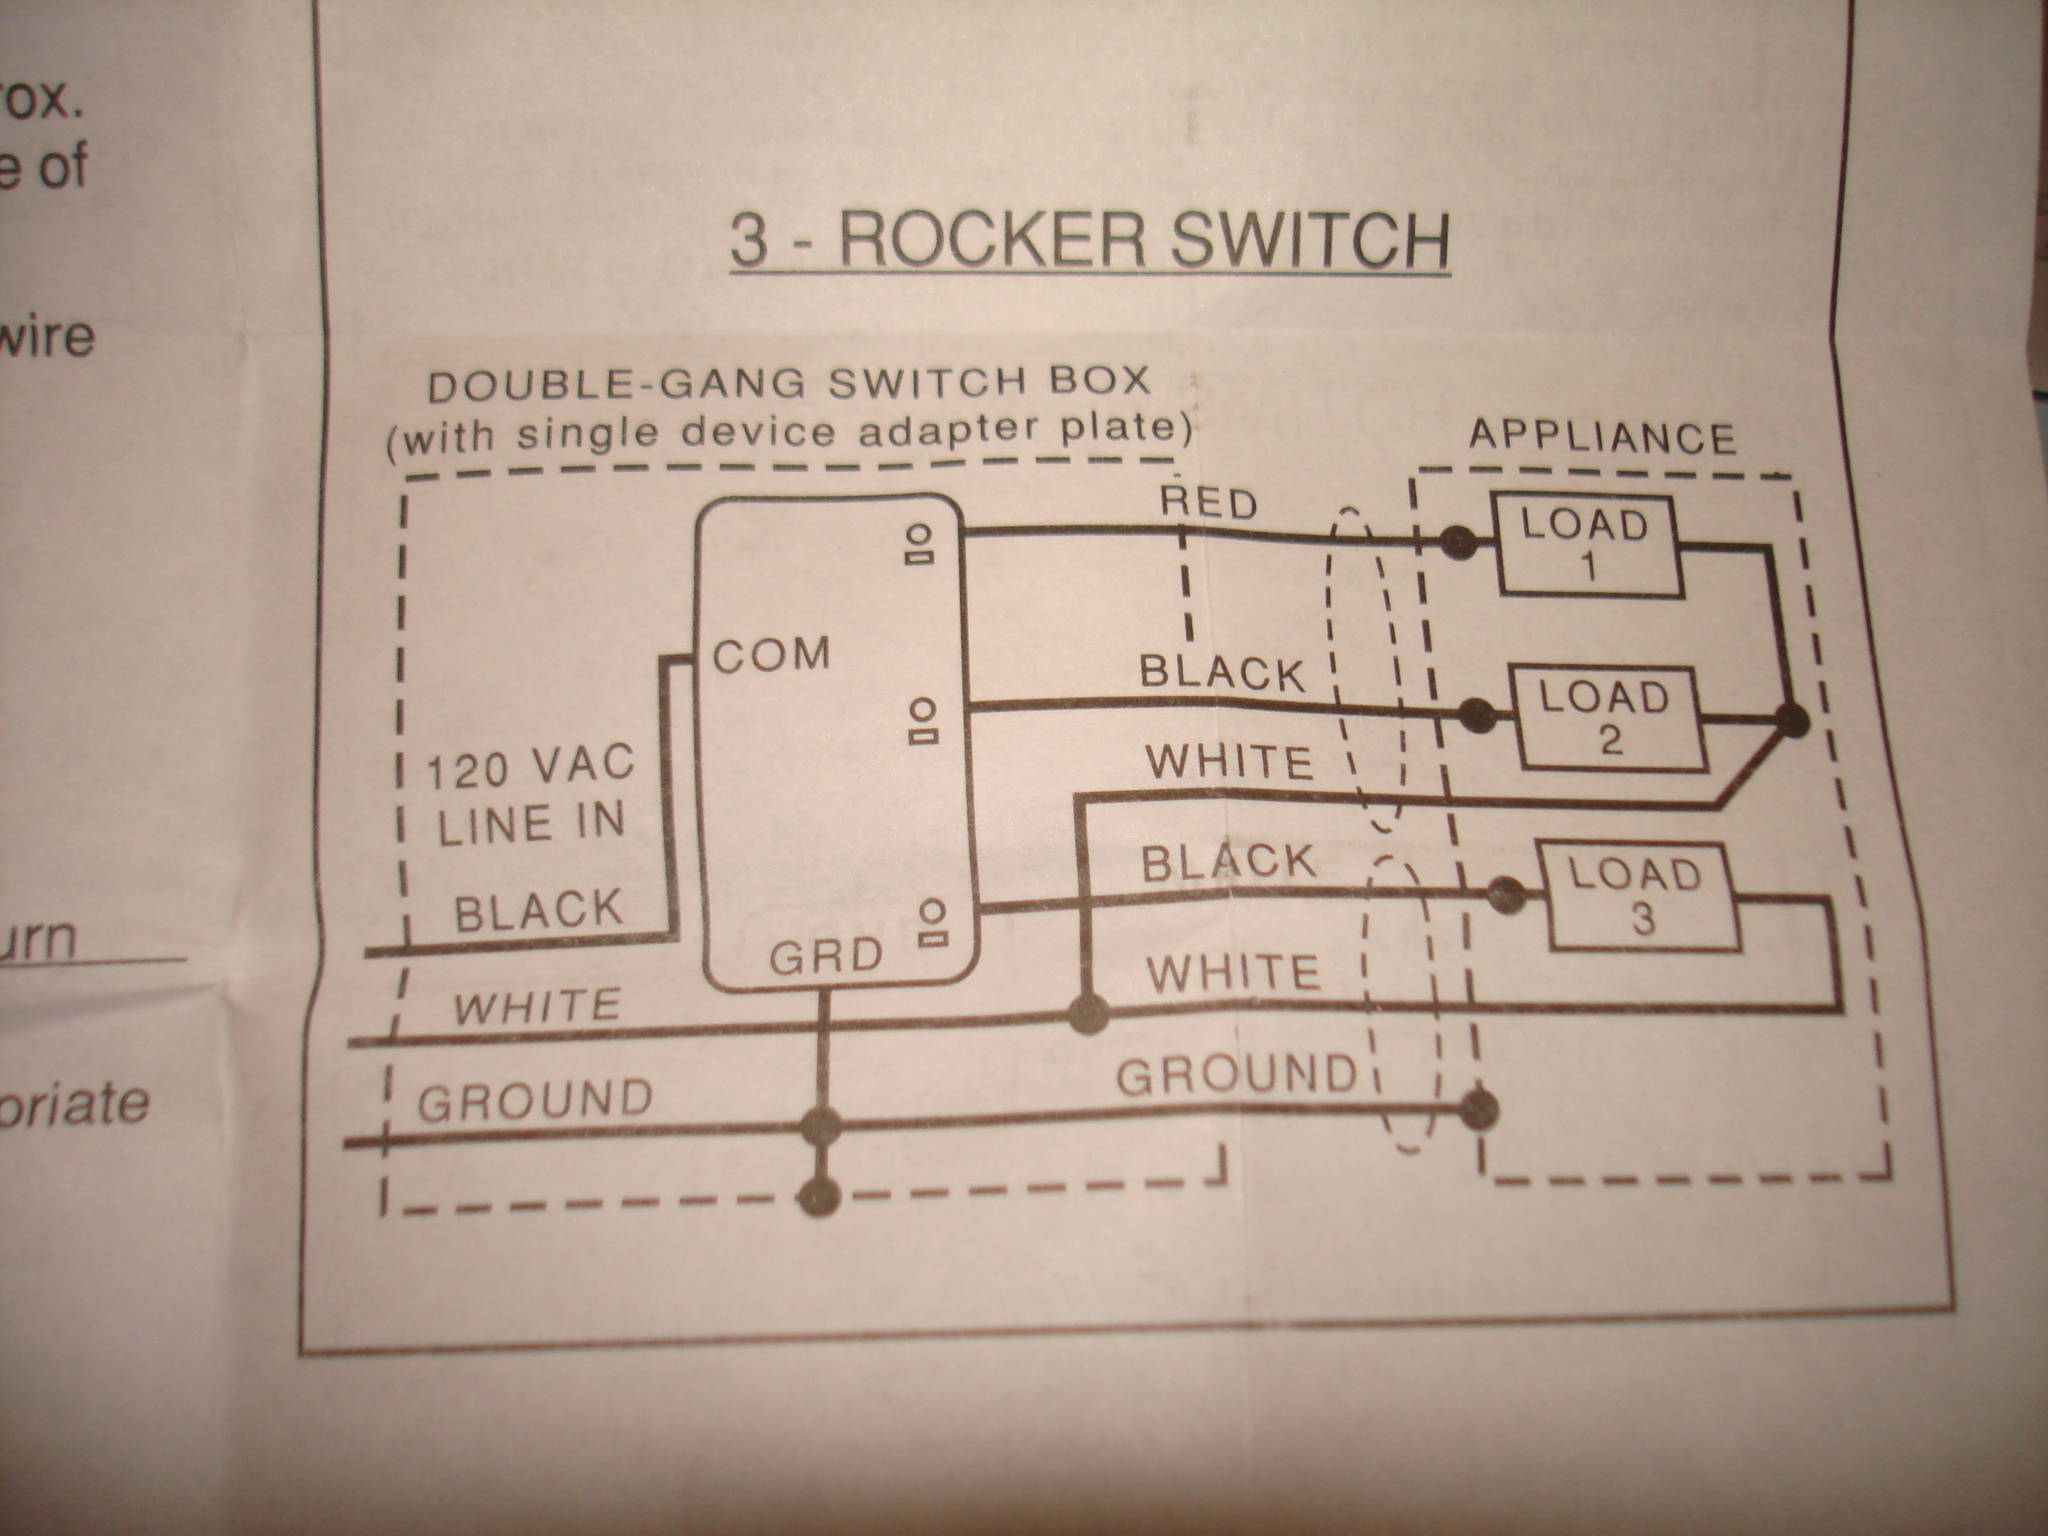 fan switch wiring diagram 1999 toyota 4runner spark plug help squirrel cage blower for flowhood - mushroom cultivation shroomery message board